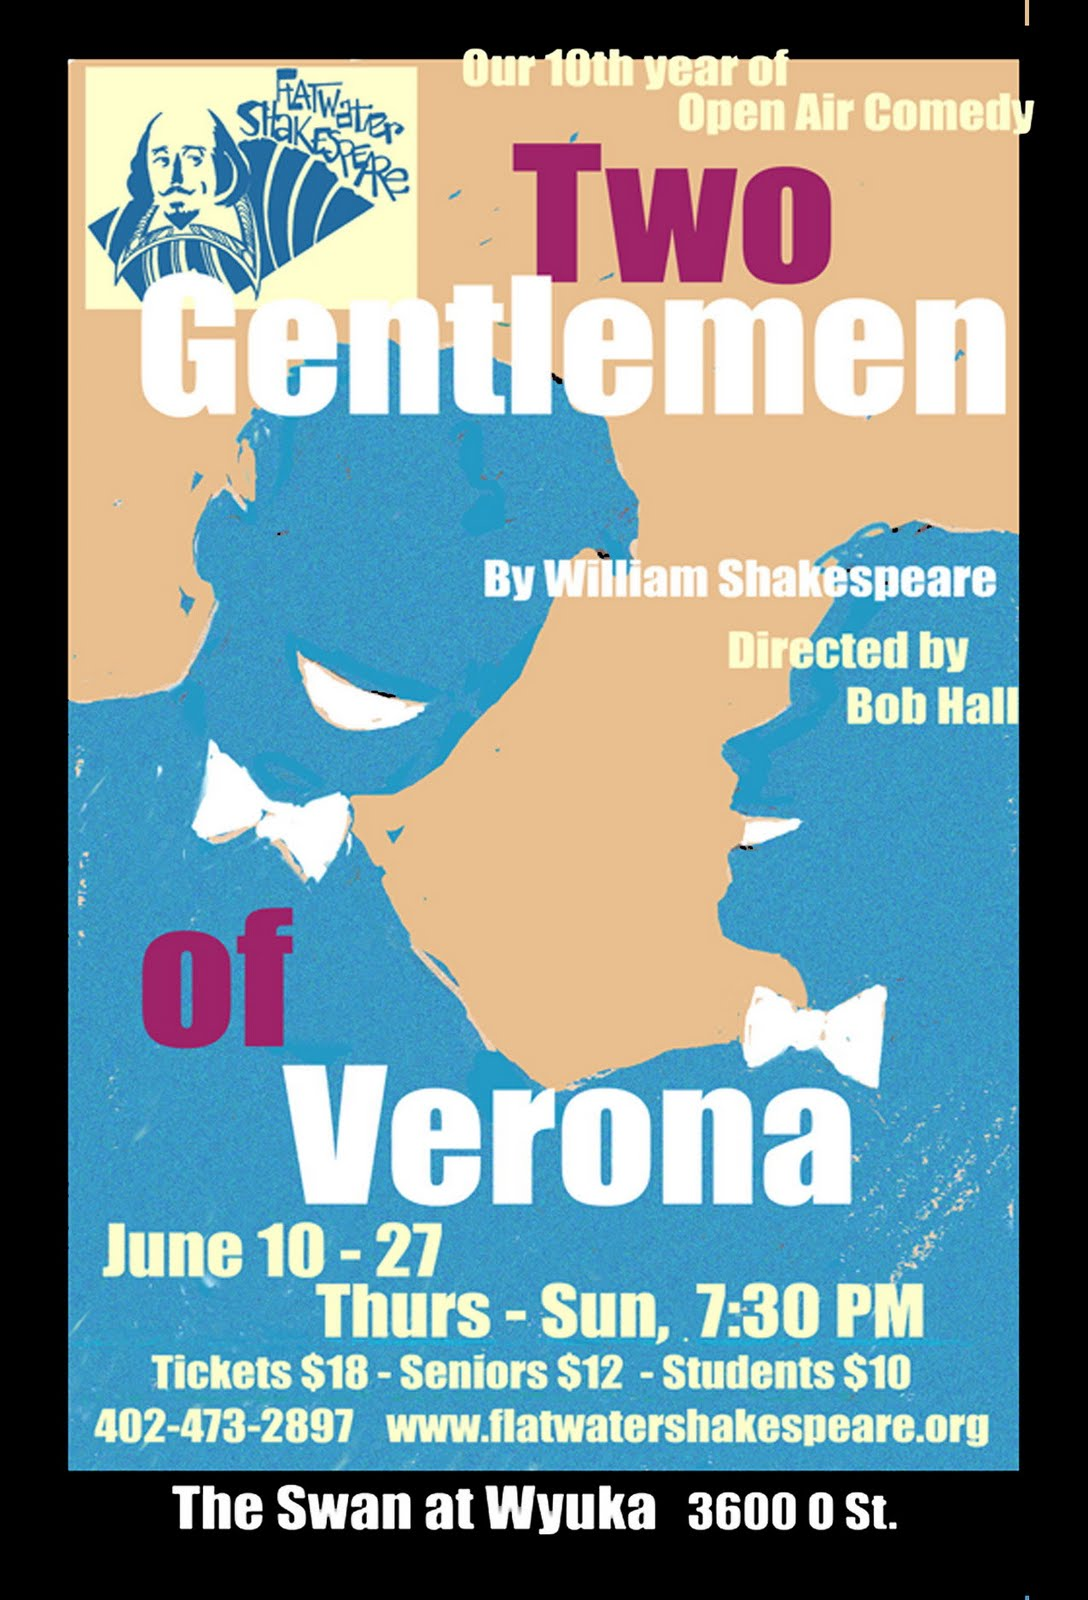 flatwater shakespeare s blog news  ten years of open air comedy flatwater shakespeare presents the two gentlemen of verona